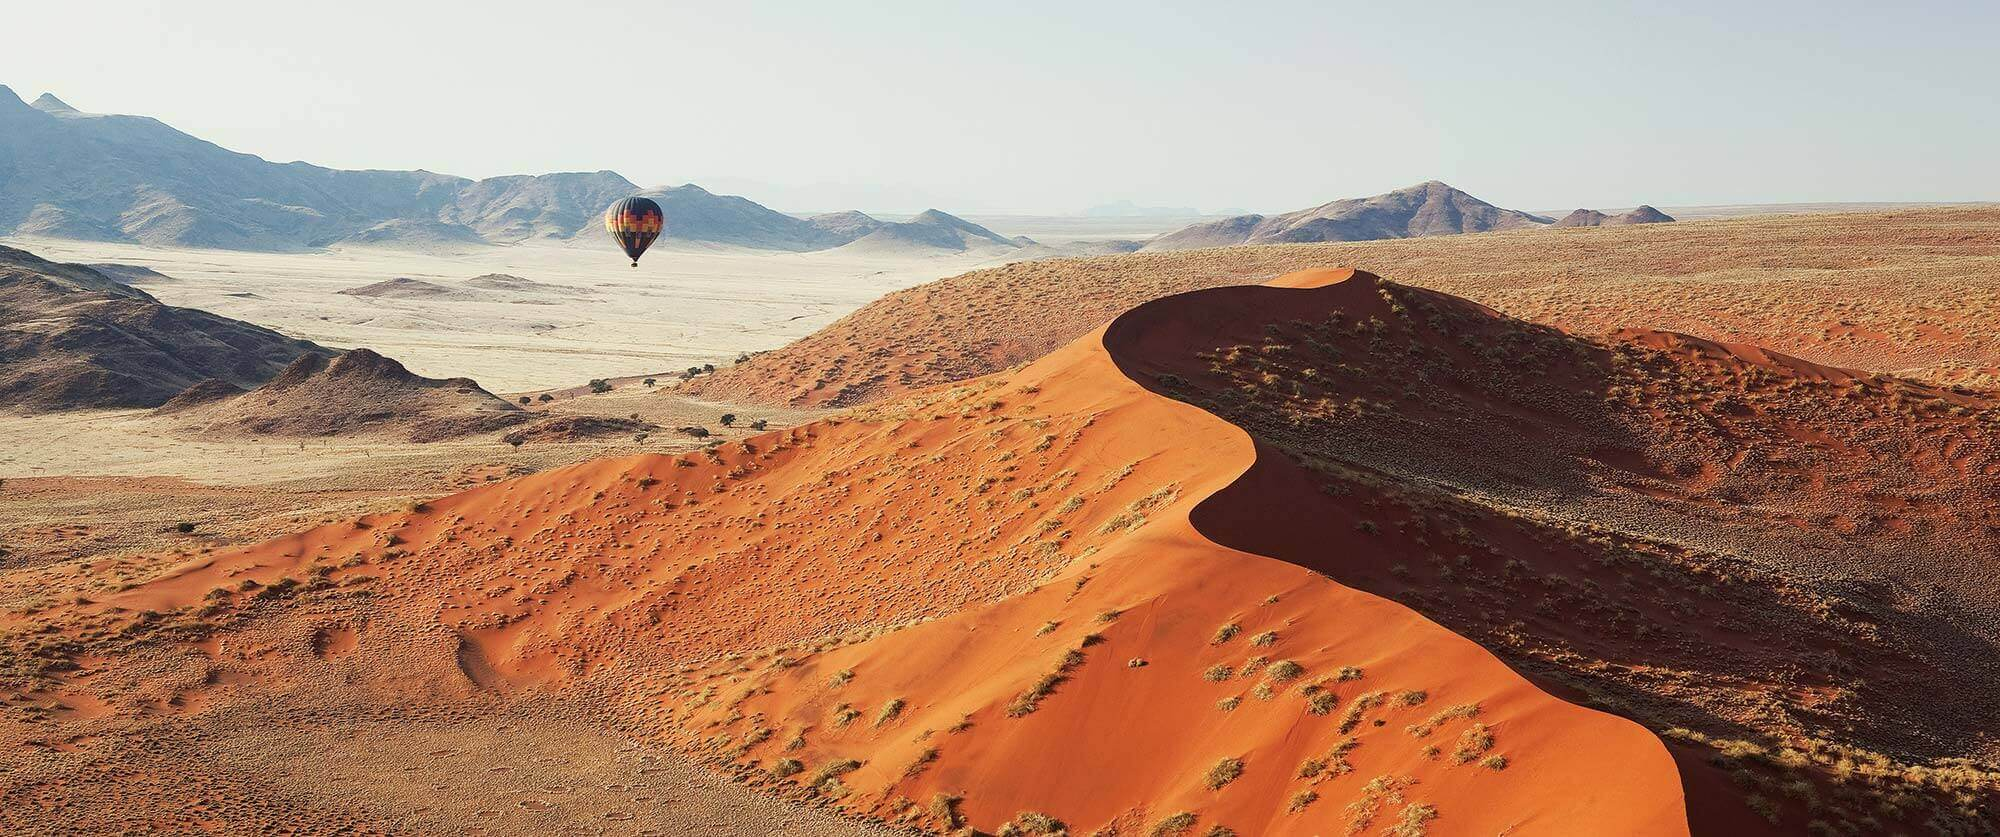 Hot air balloon over the Sossusvlei dunes in Namibia